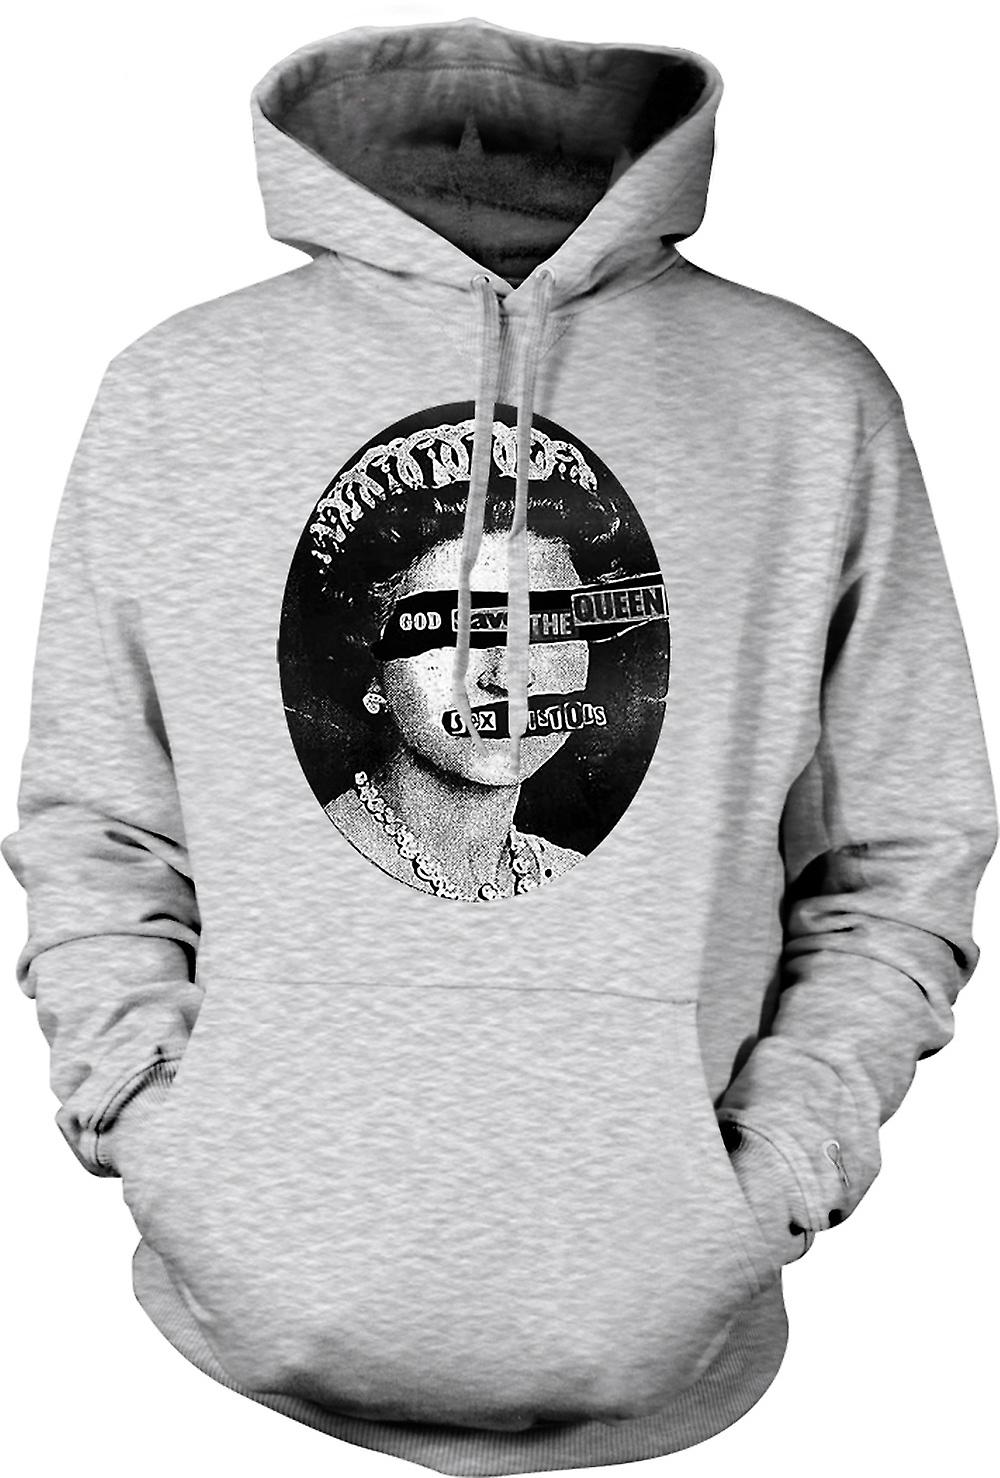 Mens Hoodie - God Save The Queen - Punk